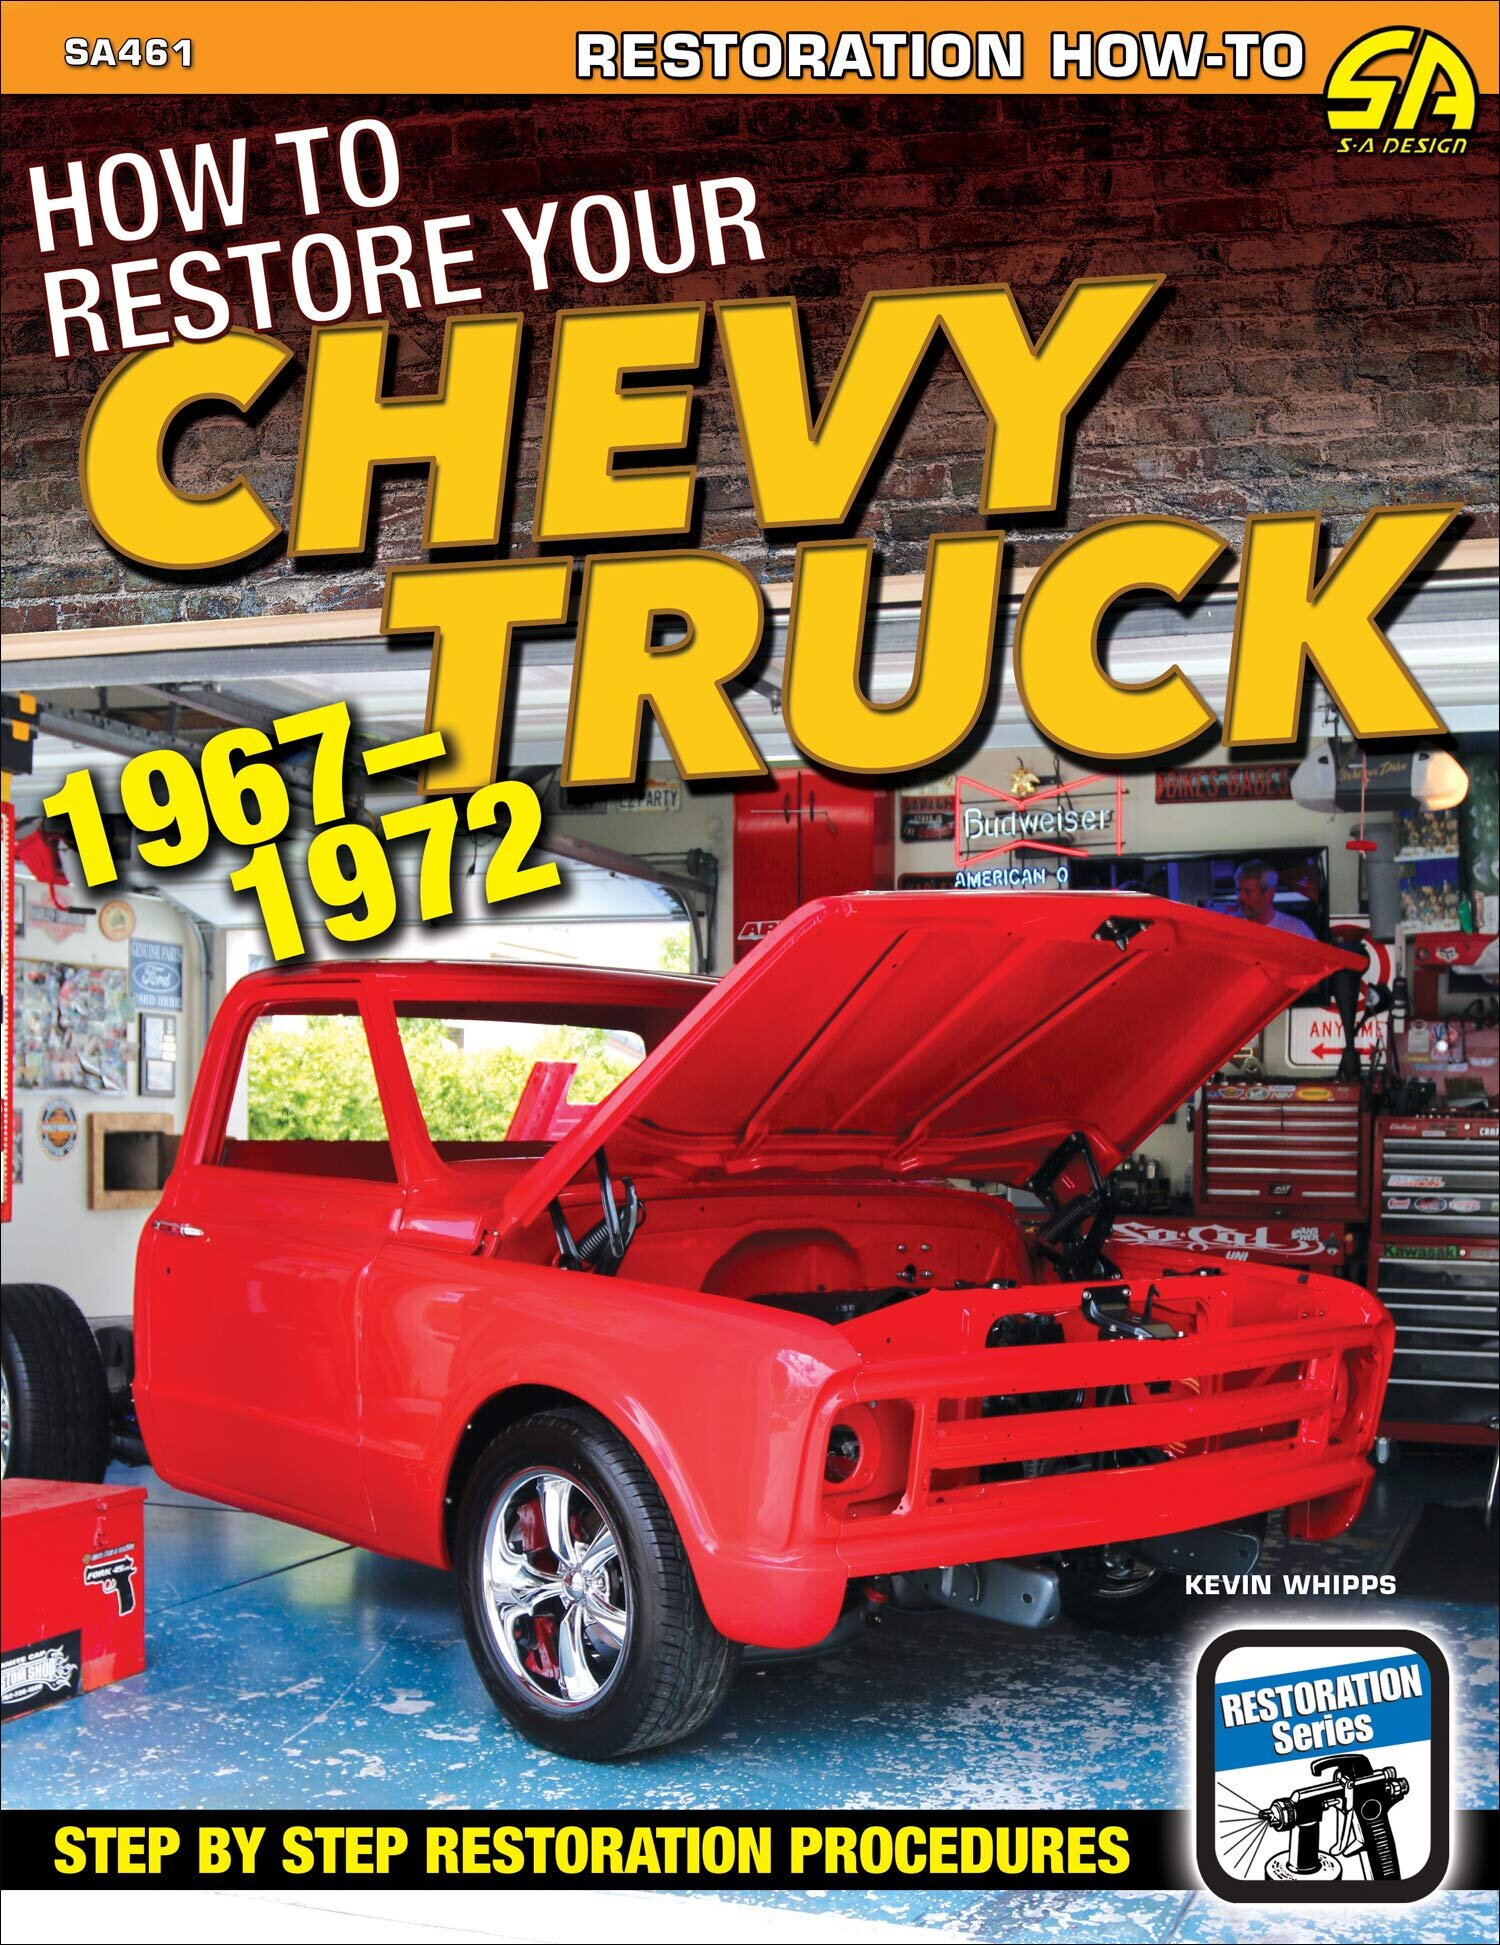 How to Restore Your Chevy Truck: 1967-1972 - The same basic premise as the other book, but with older trucks.